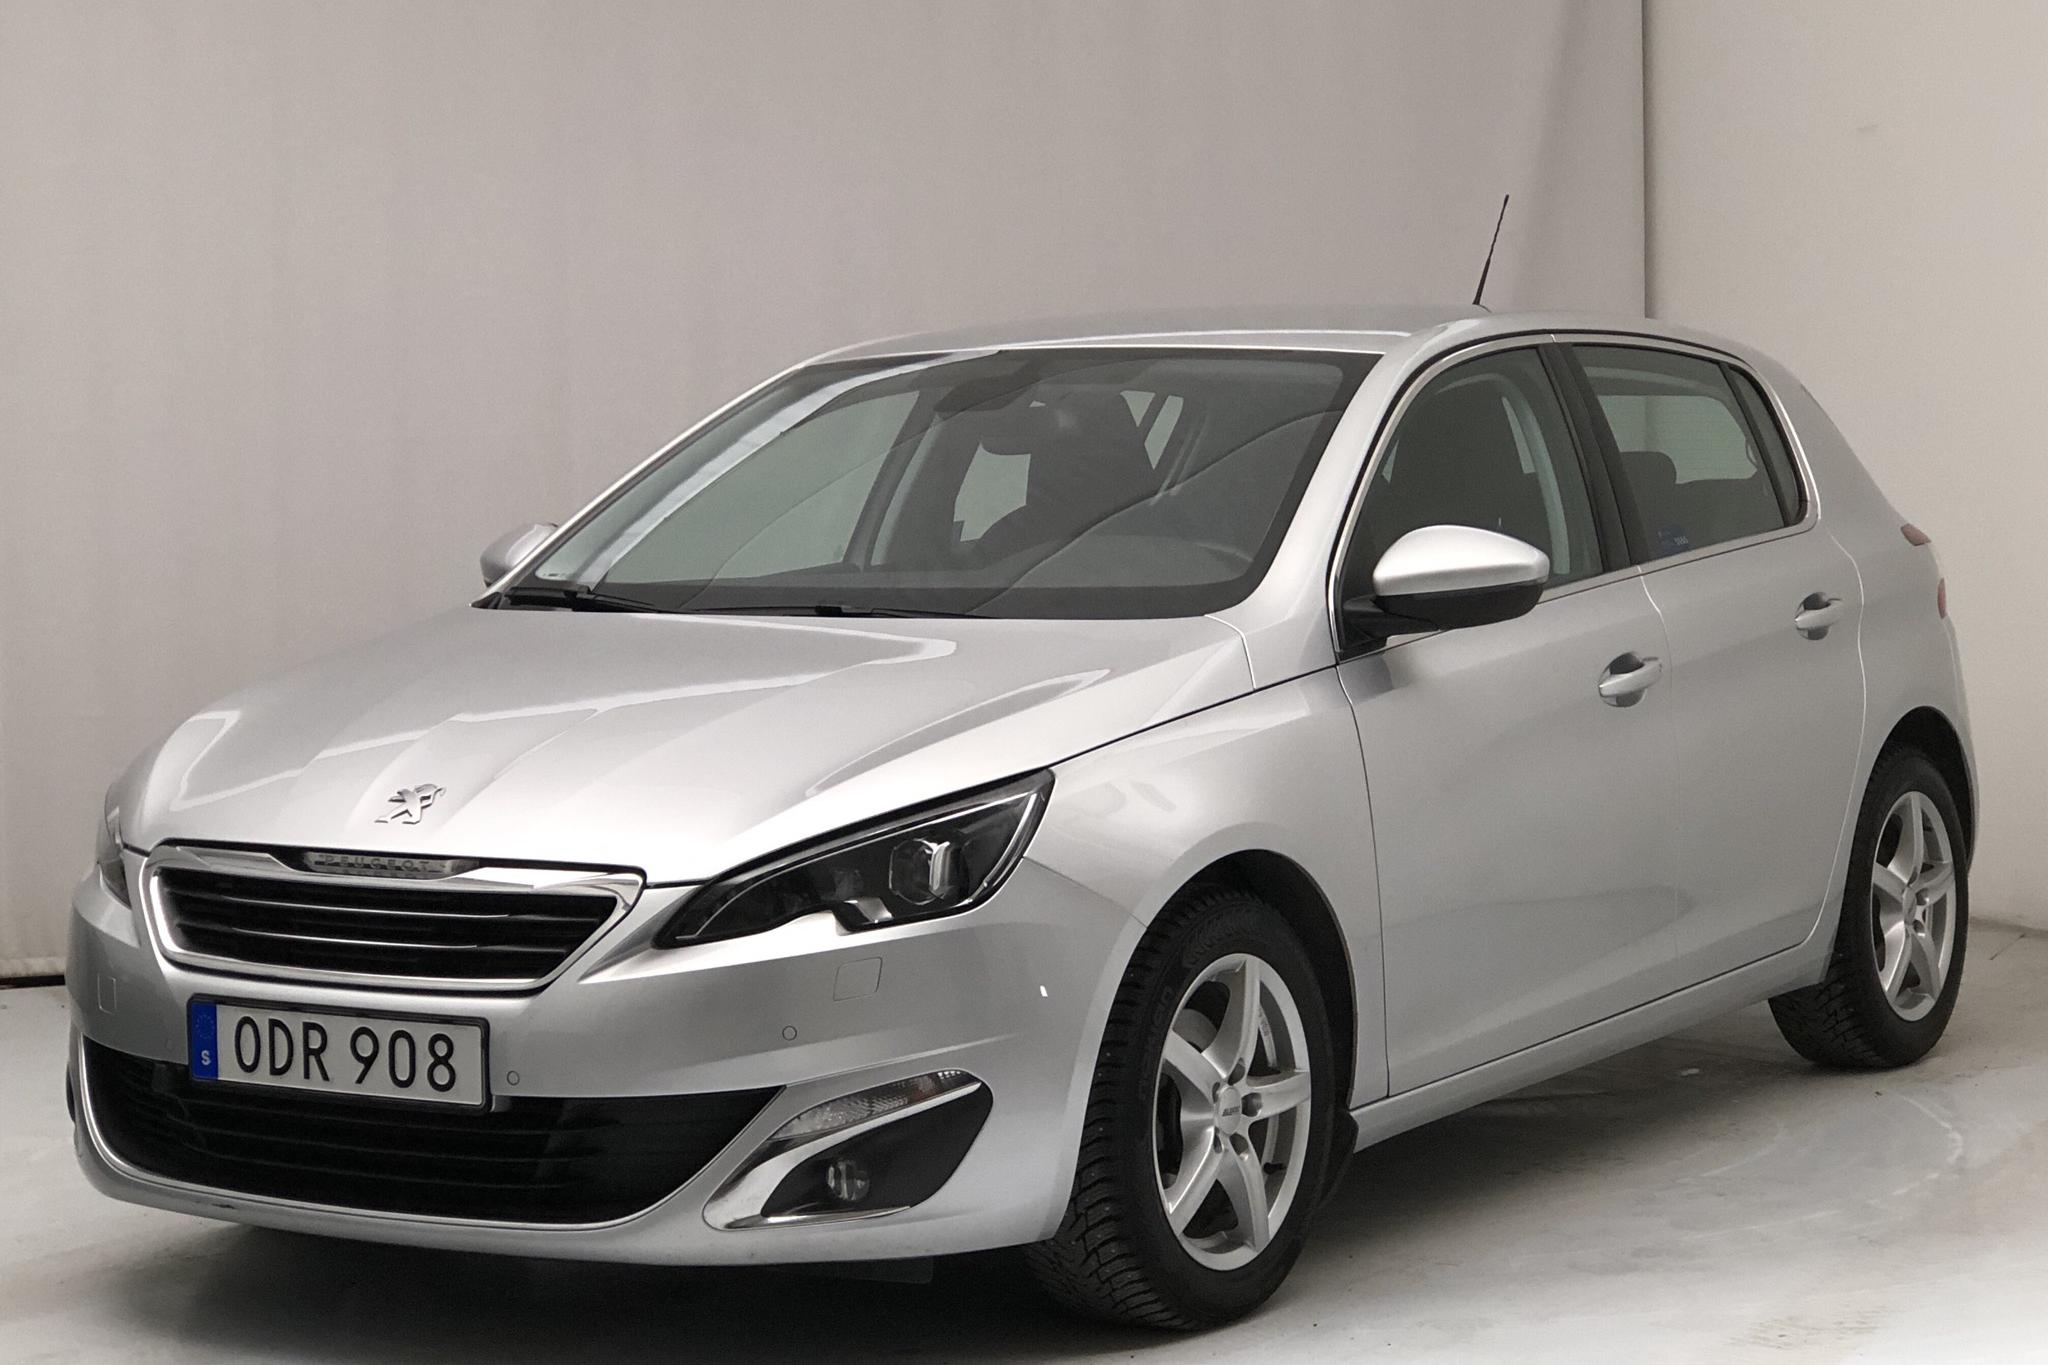 Peugeot 308 BlueHDi 5dr (120hk) - 34 990 km - Automatic - Light Grey - 2016